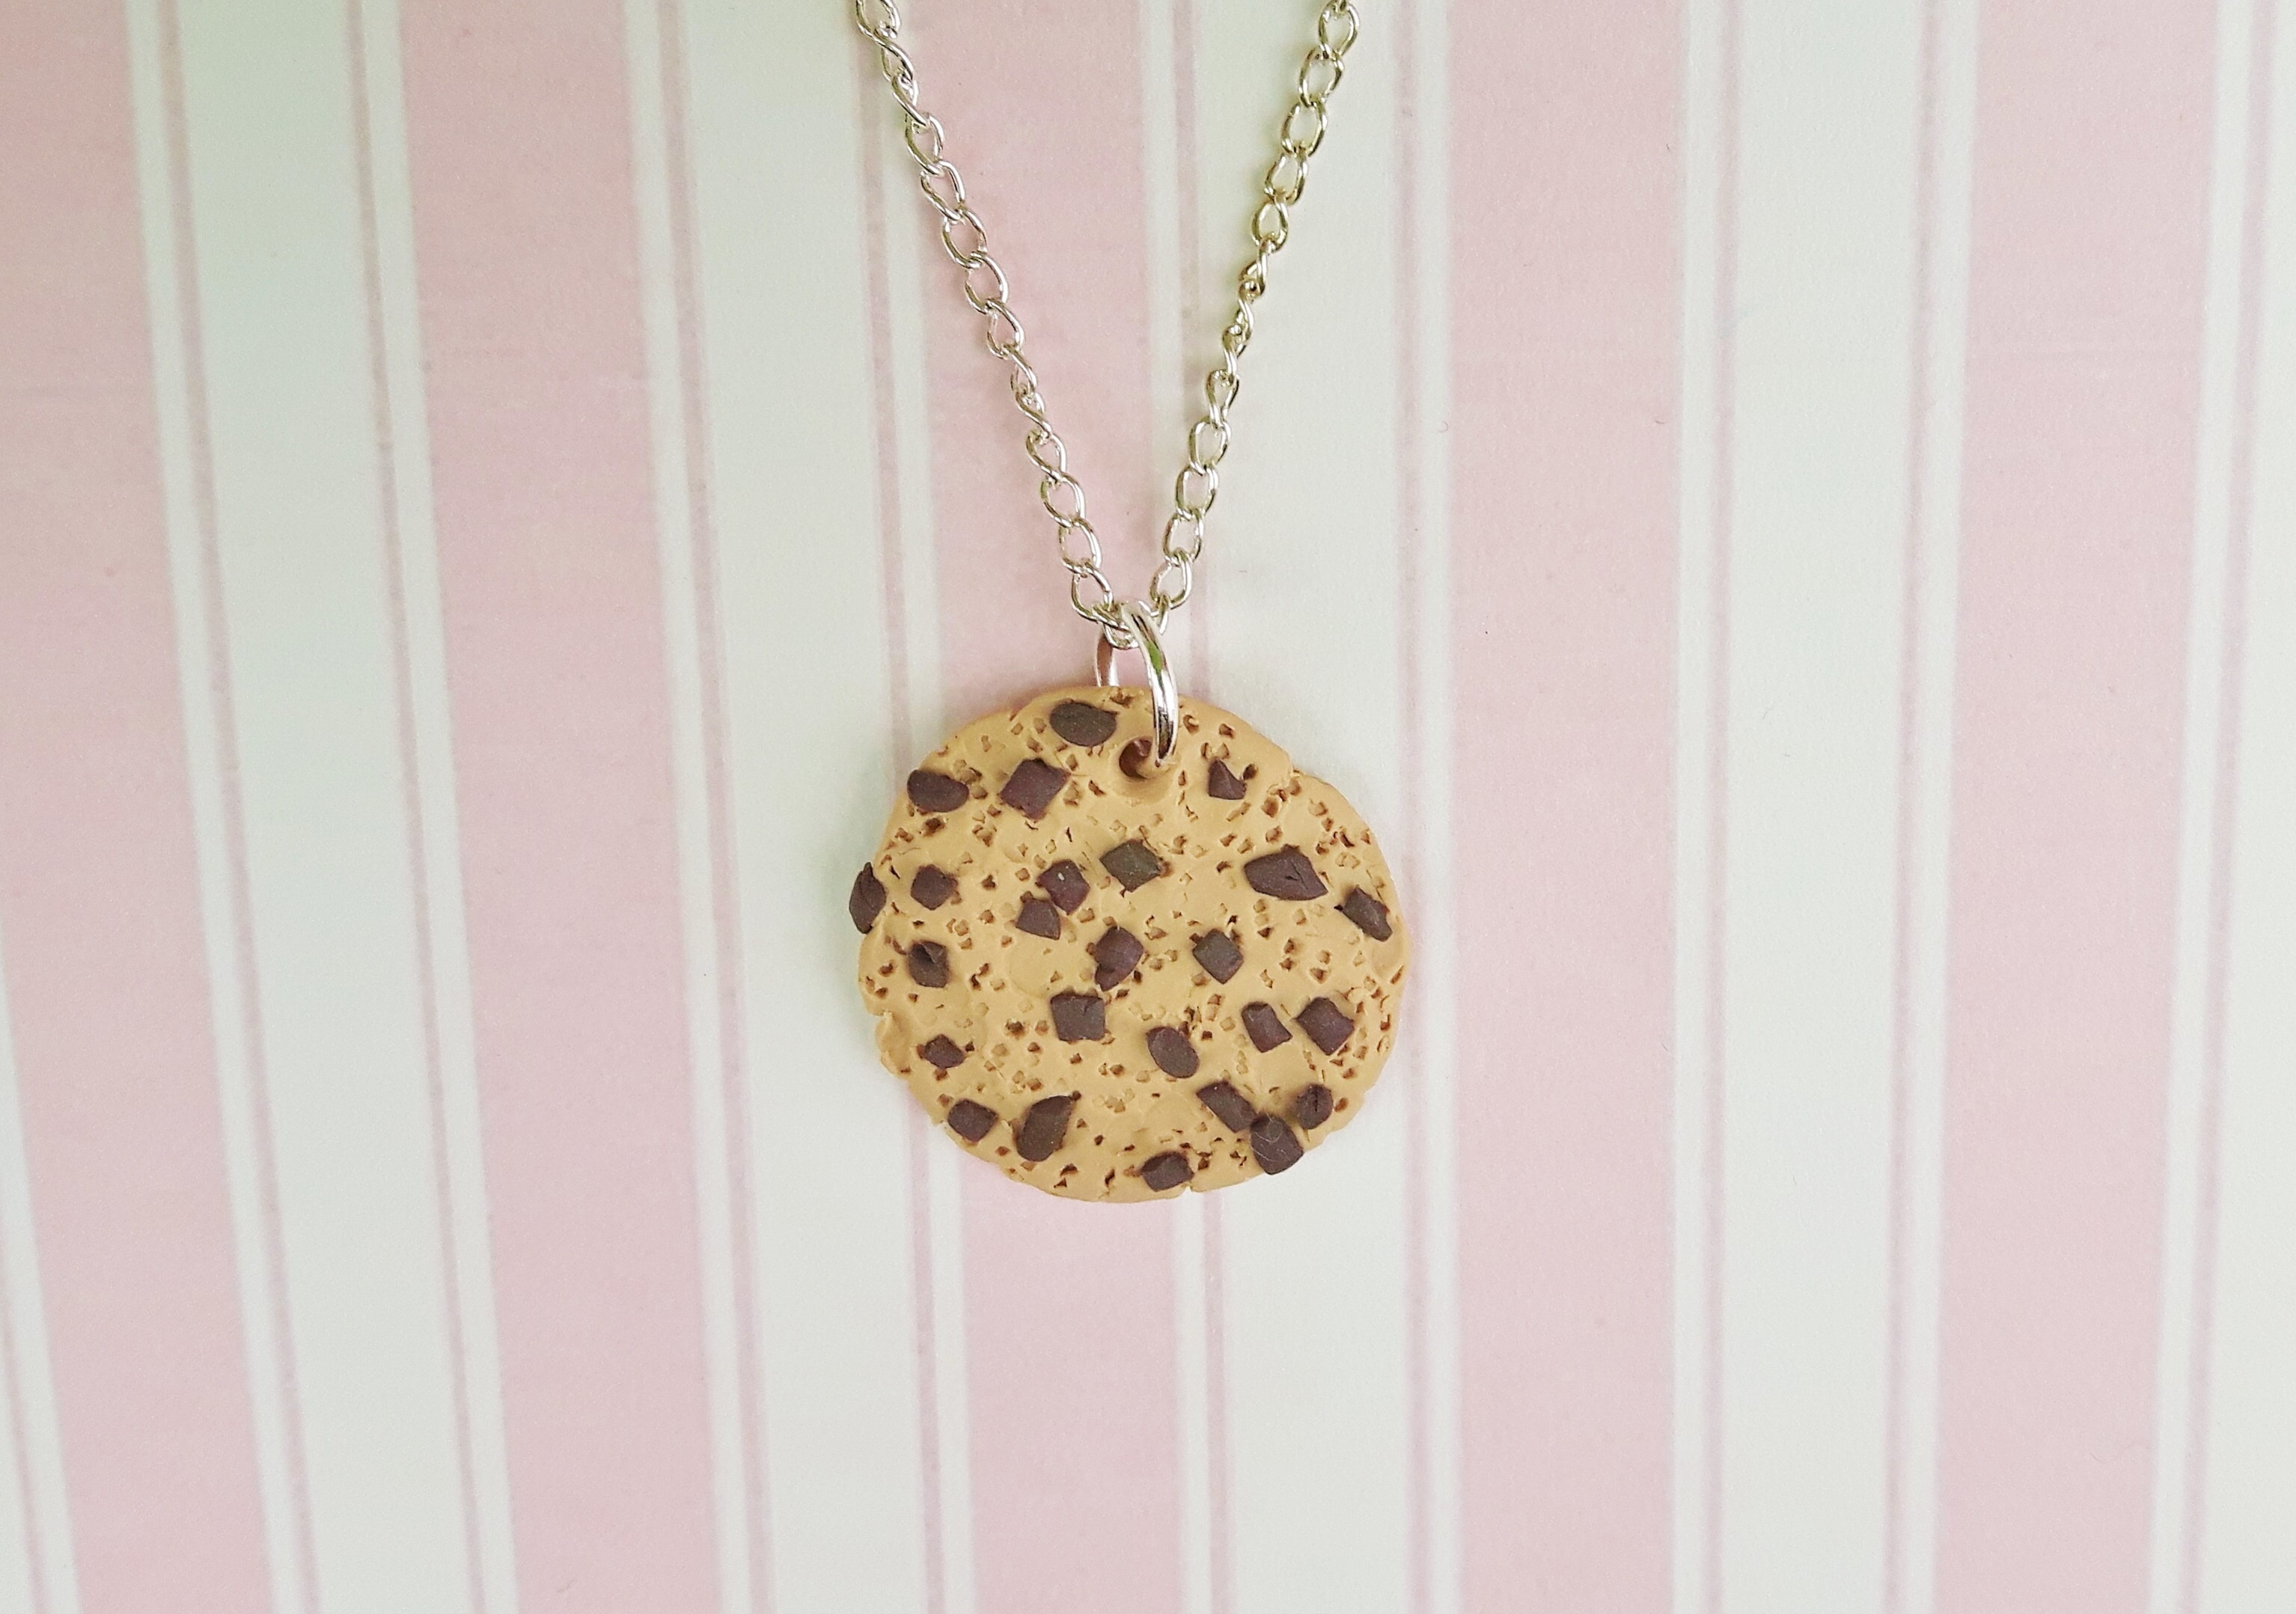 Handmade, cute, sweet, candy, pick 'n' mix, novelty, kitsch, kawaii, jewellery, accessories, gifts, fashion, made from, Fimo, polymer clay, silver, plated, nickel free, in uk, chocolate, chip, cookie, necklace,